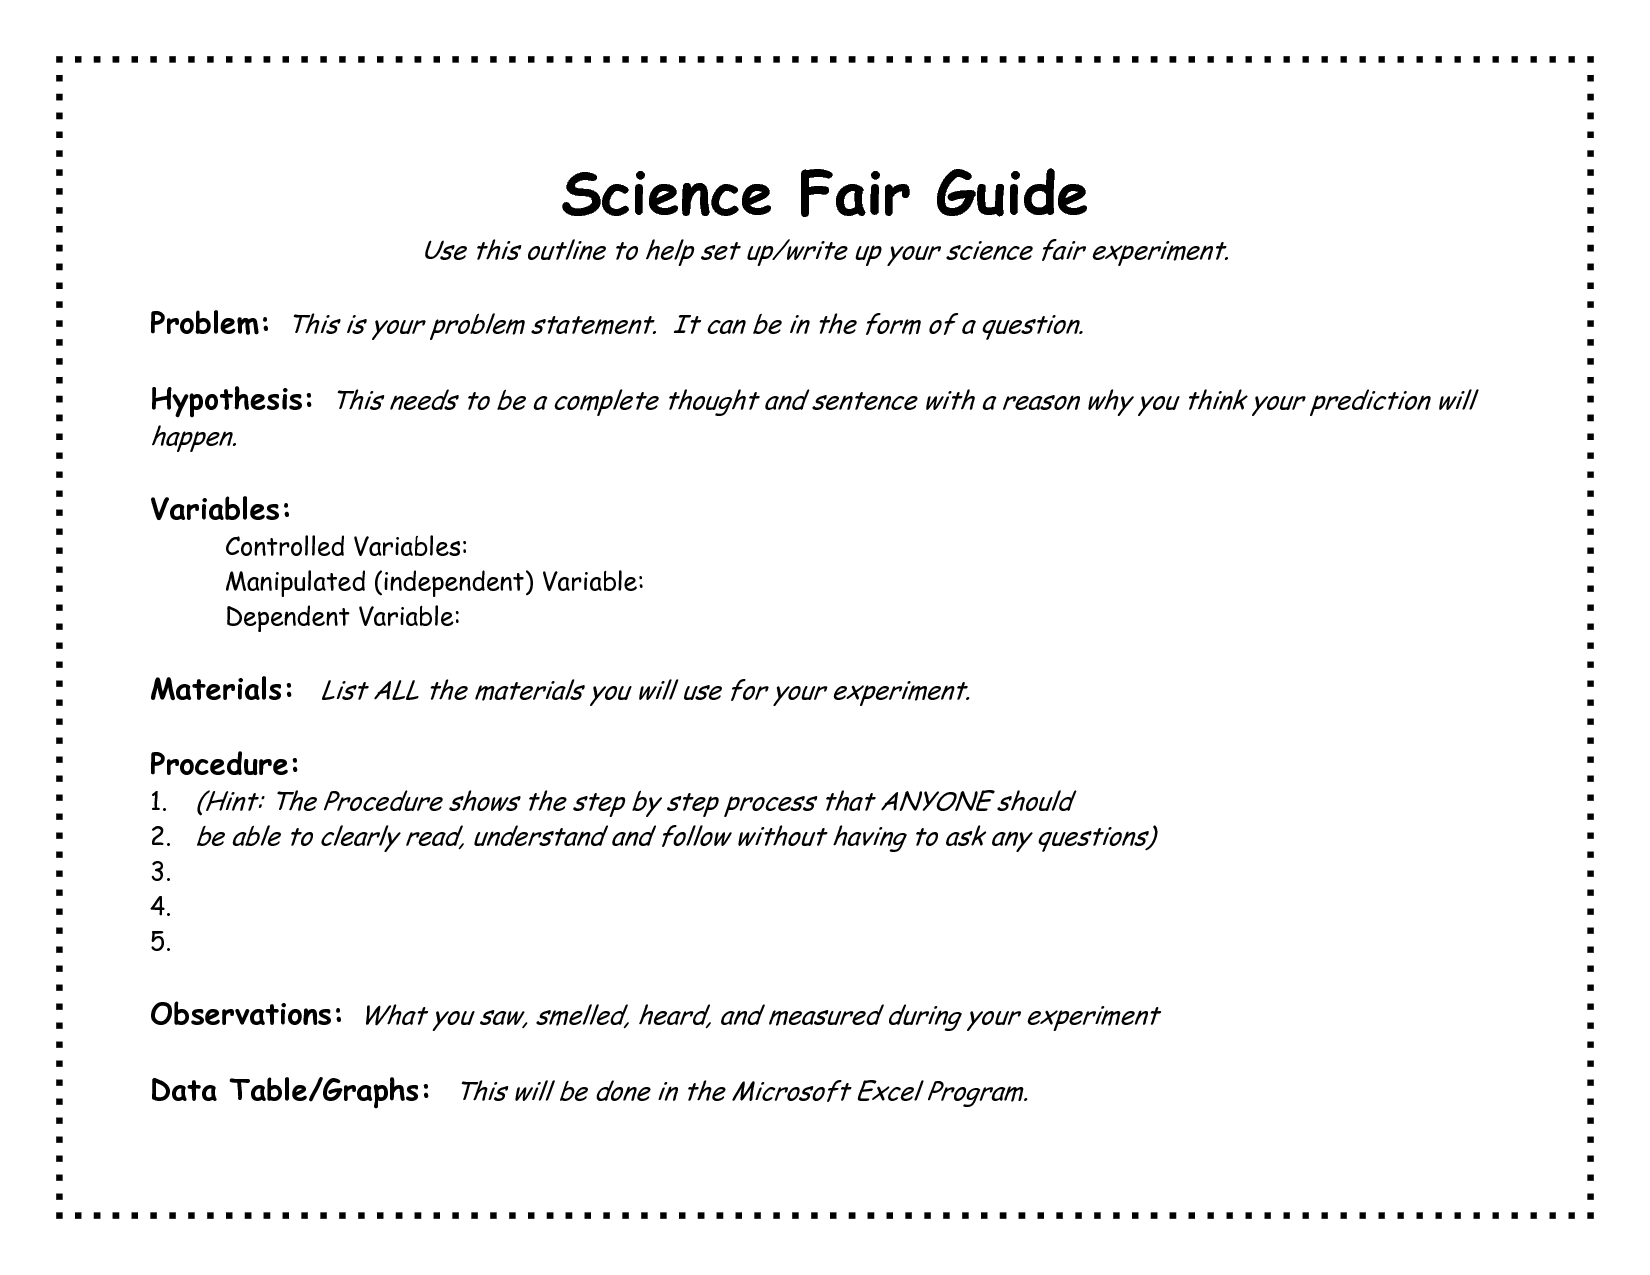 005 Science Fair Researchs Best Research Papers Paper Example For Sixth Grade Middle School Full